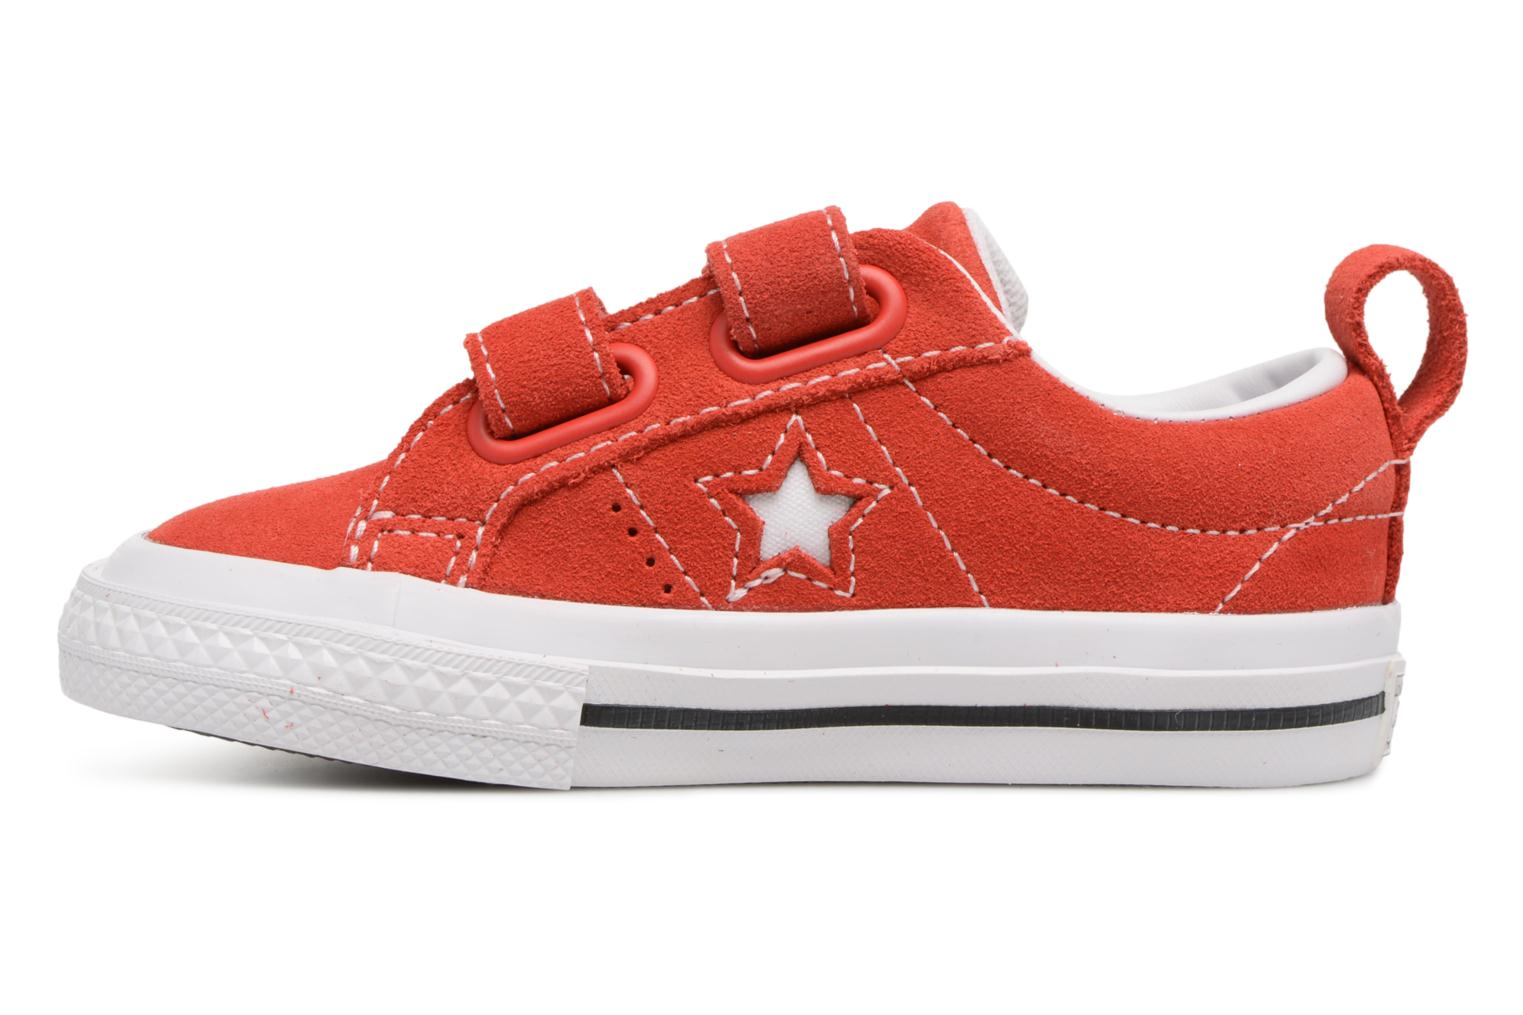 Red/White/Black Converse Converse One Star Suede 2V Ox (Rouge)